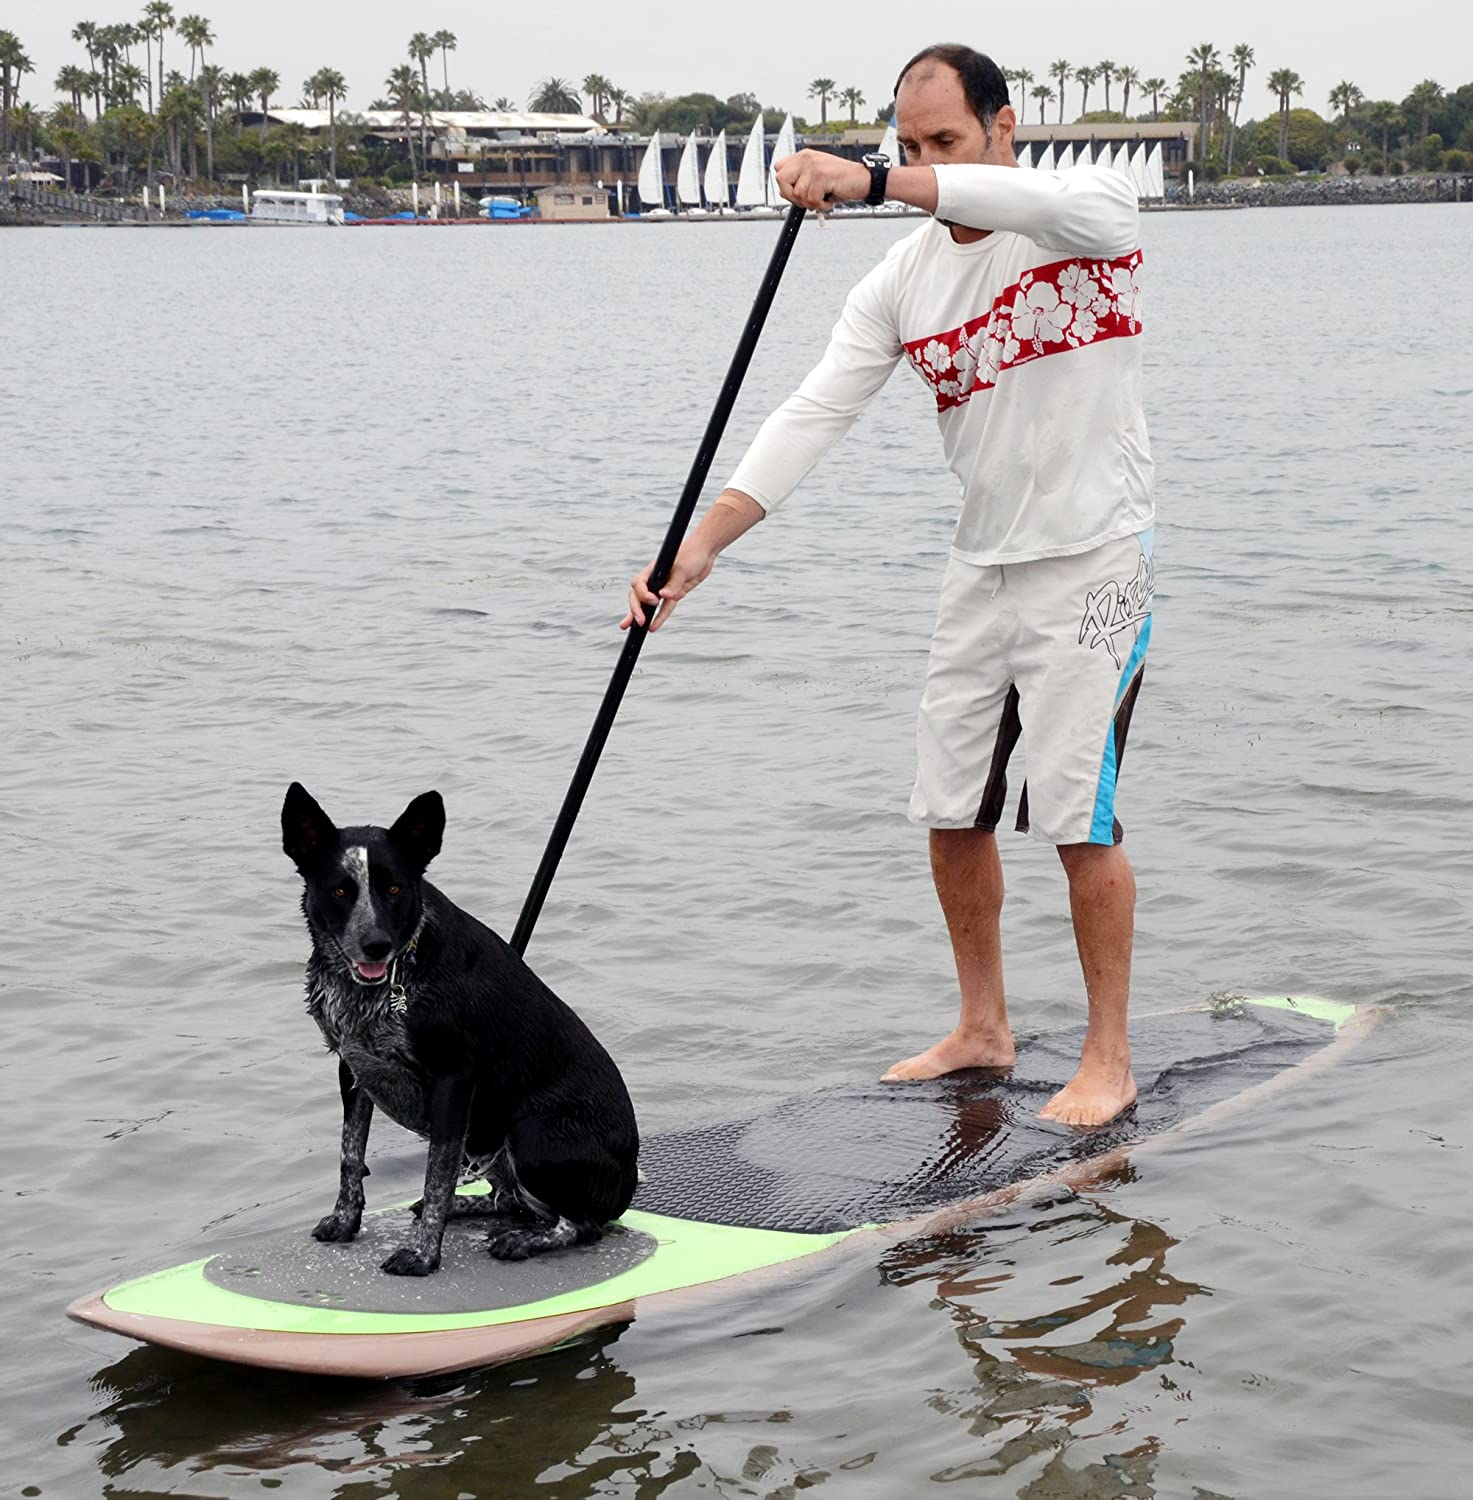 Pup Deck SUP Traction Pad for Dogs Stand Up Paddleboard Deck Padding ( Solid Style ) Better Surf than Sorry PUPDECK-SOLID